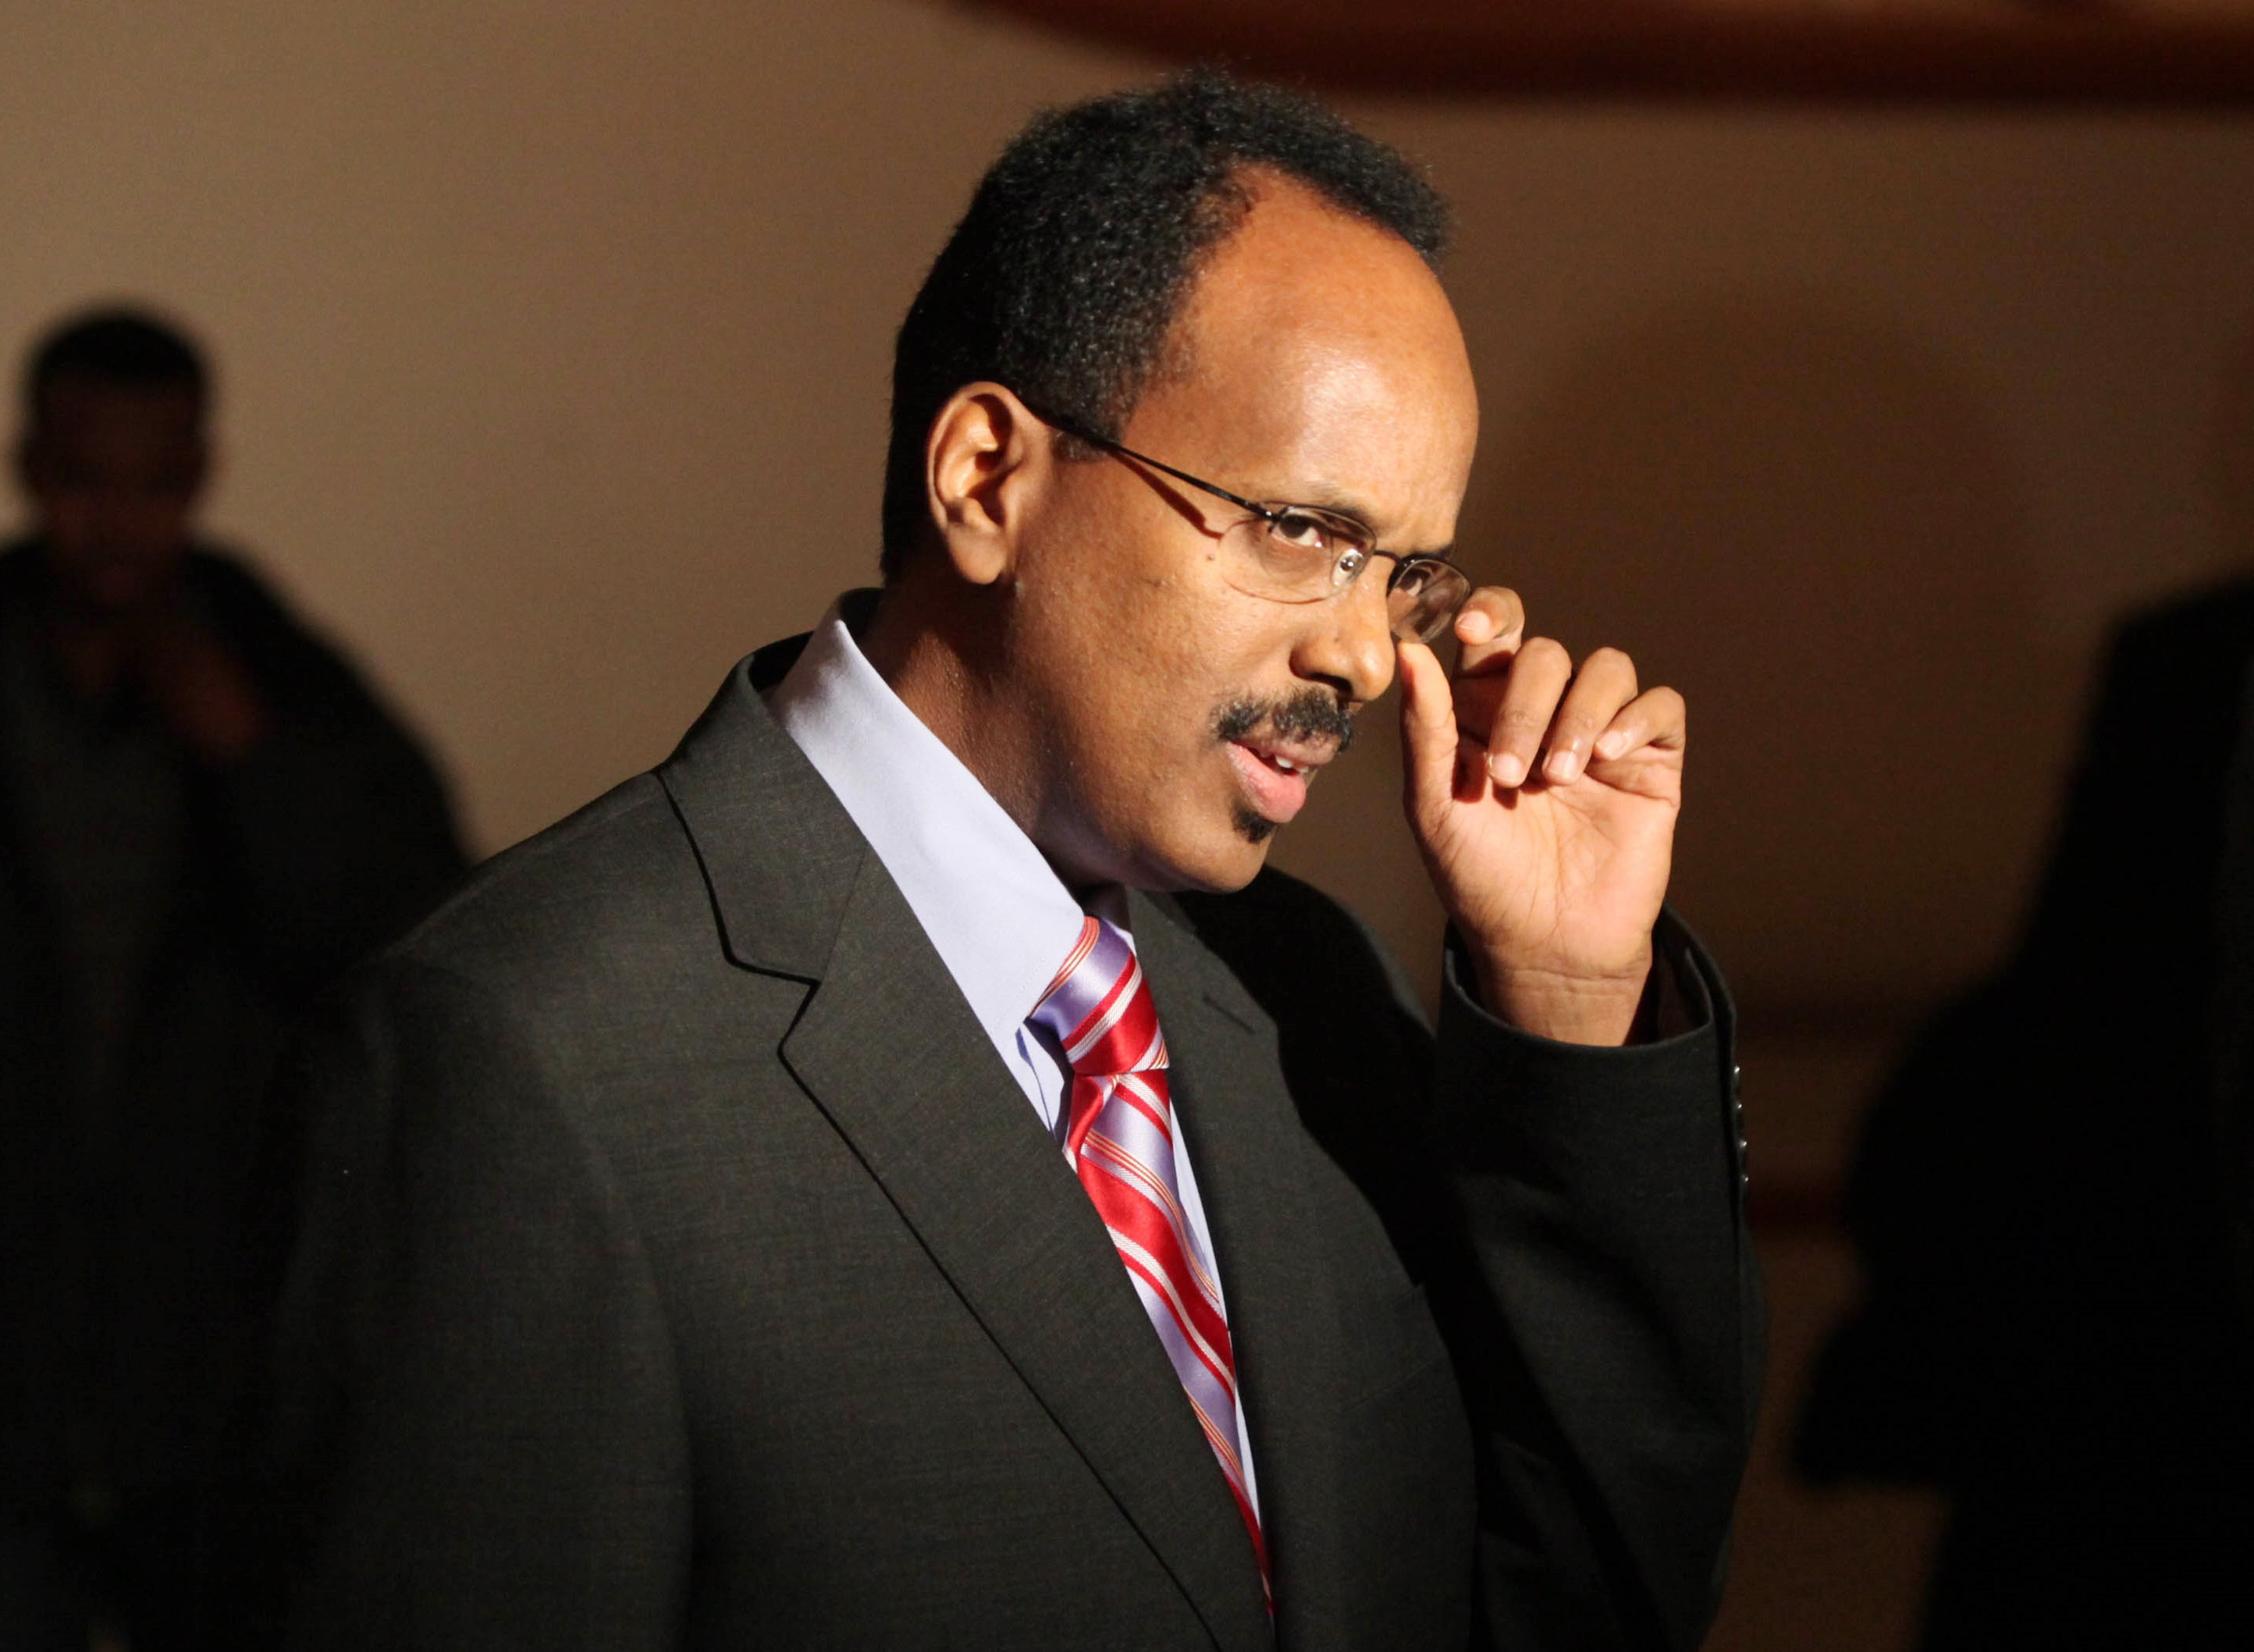 Somalia President-elect Mohamed A. Mohamed, who owns a house on Grand Island, will be inaugurated Wednesday in Somalia. This is a file photo of Mohamed from 2011. (Robert Kirkham/Buffalo News)